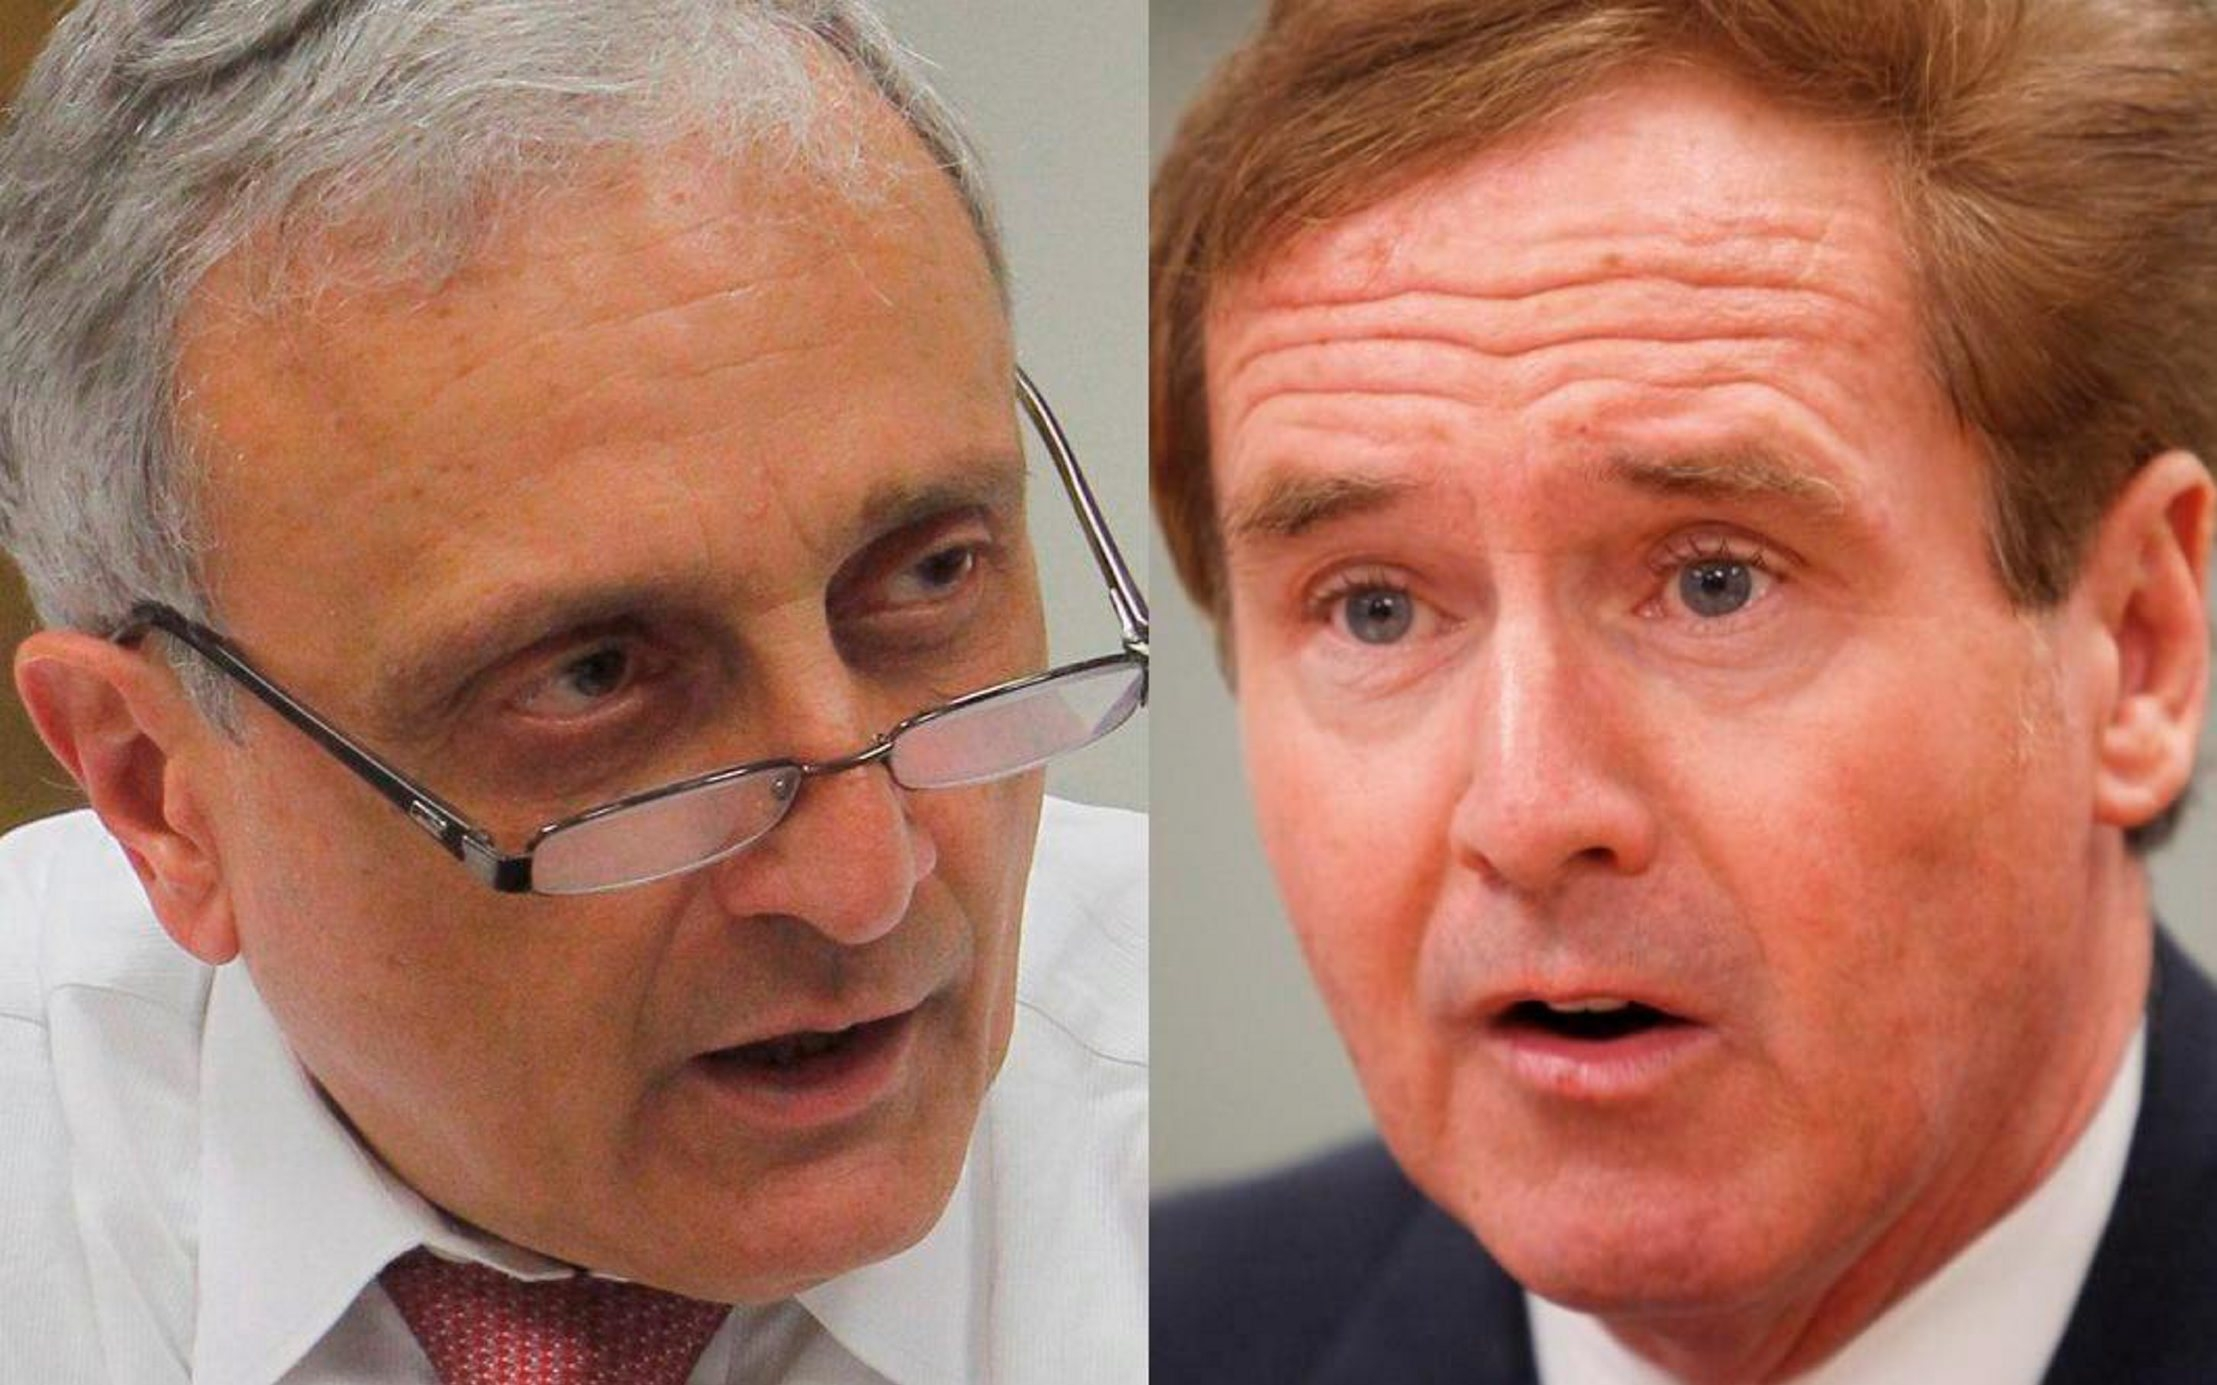 Developer Carl Paladino, left, and Rep. Brian Higgins, once called each other friends. But a feud sparked by differences over abortion and health care has blown up into a war of words in which each has called the other's integrity into question. (Buffalo News file photos)